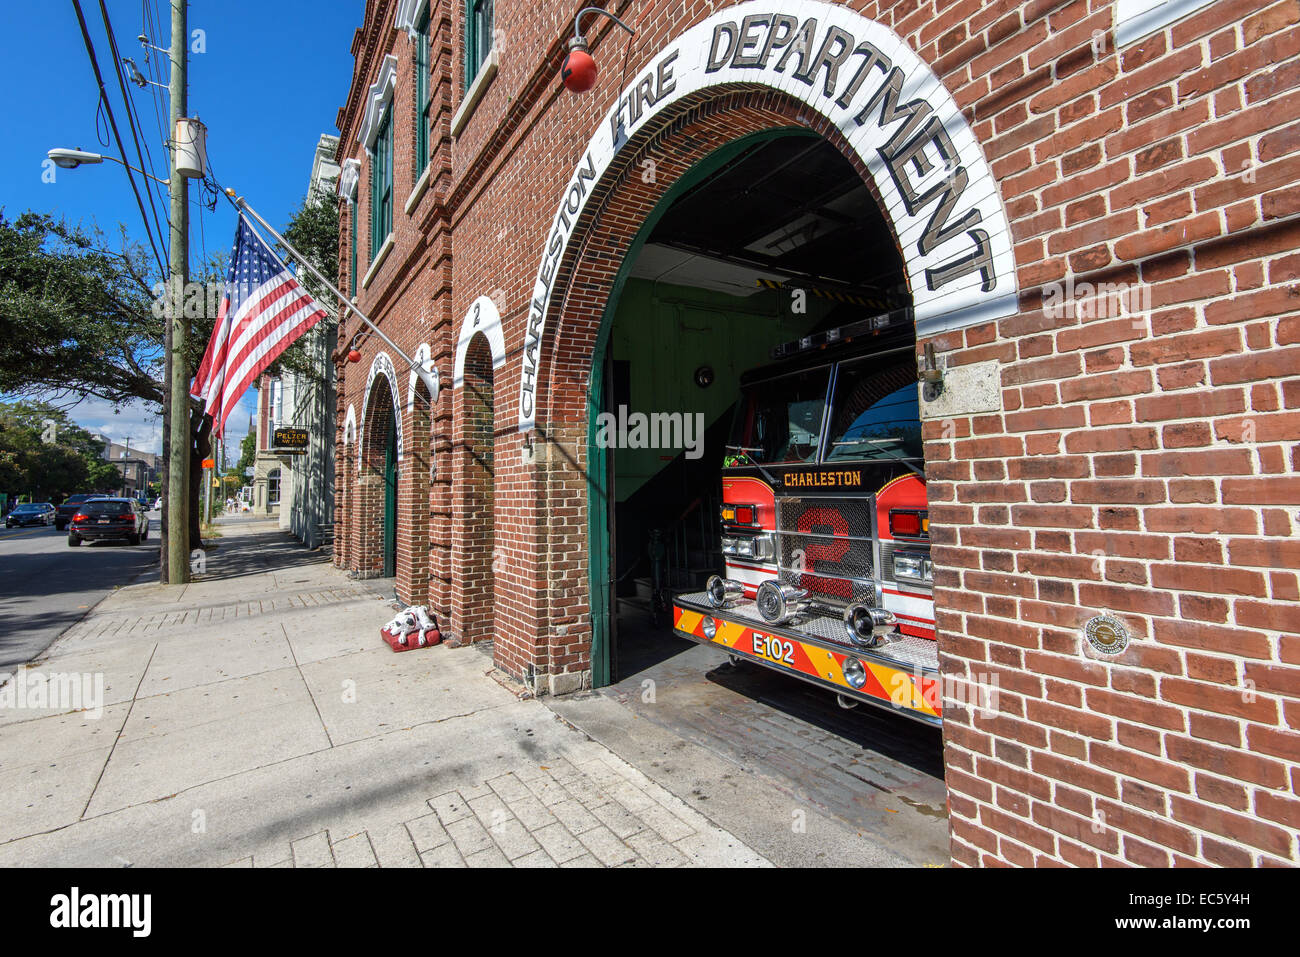 Vintage Fire Station at Meeting Street in Charleston, SC - Stock Image